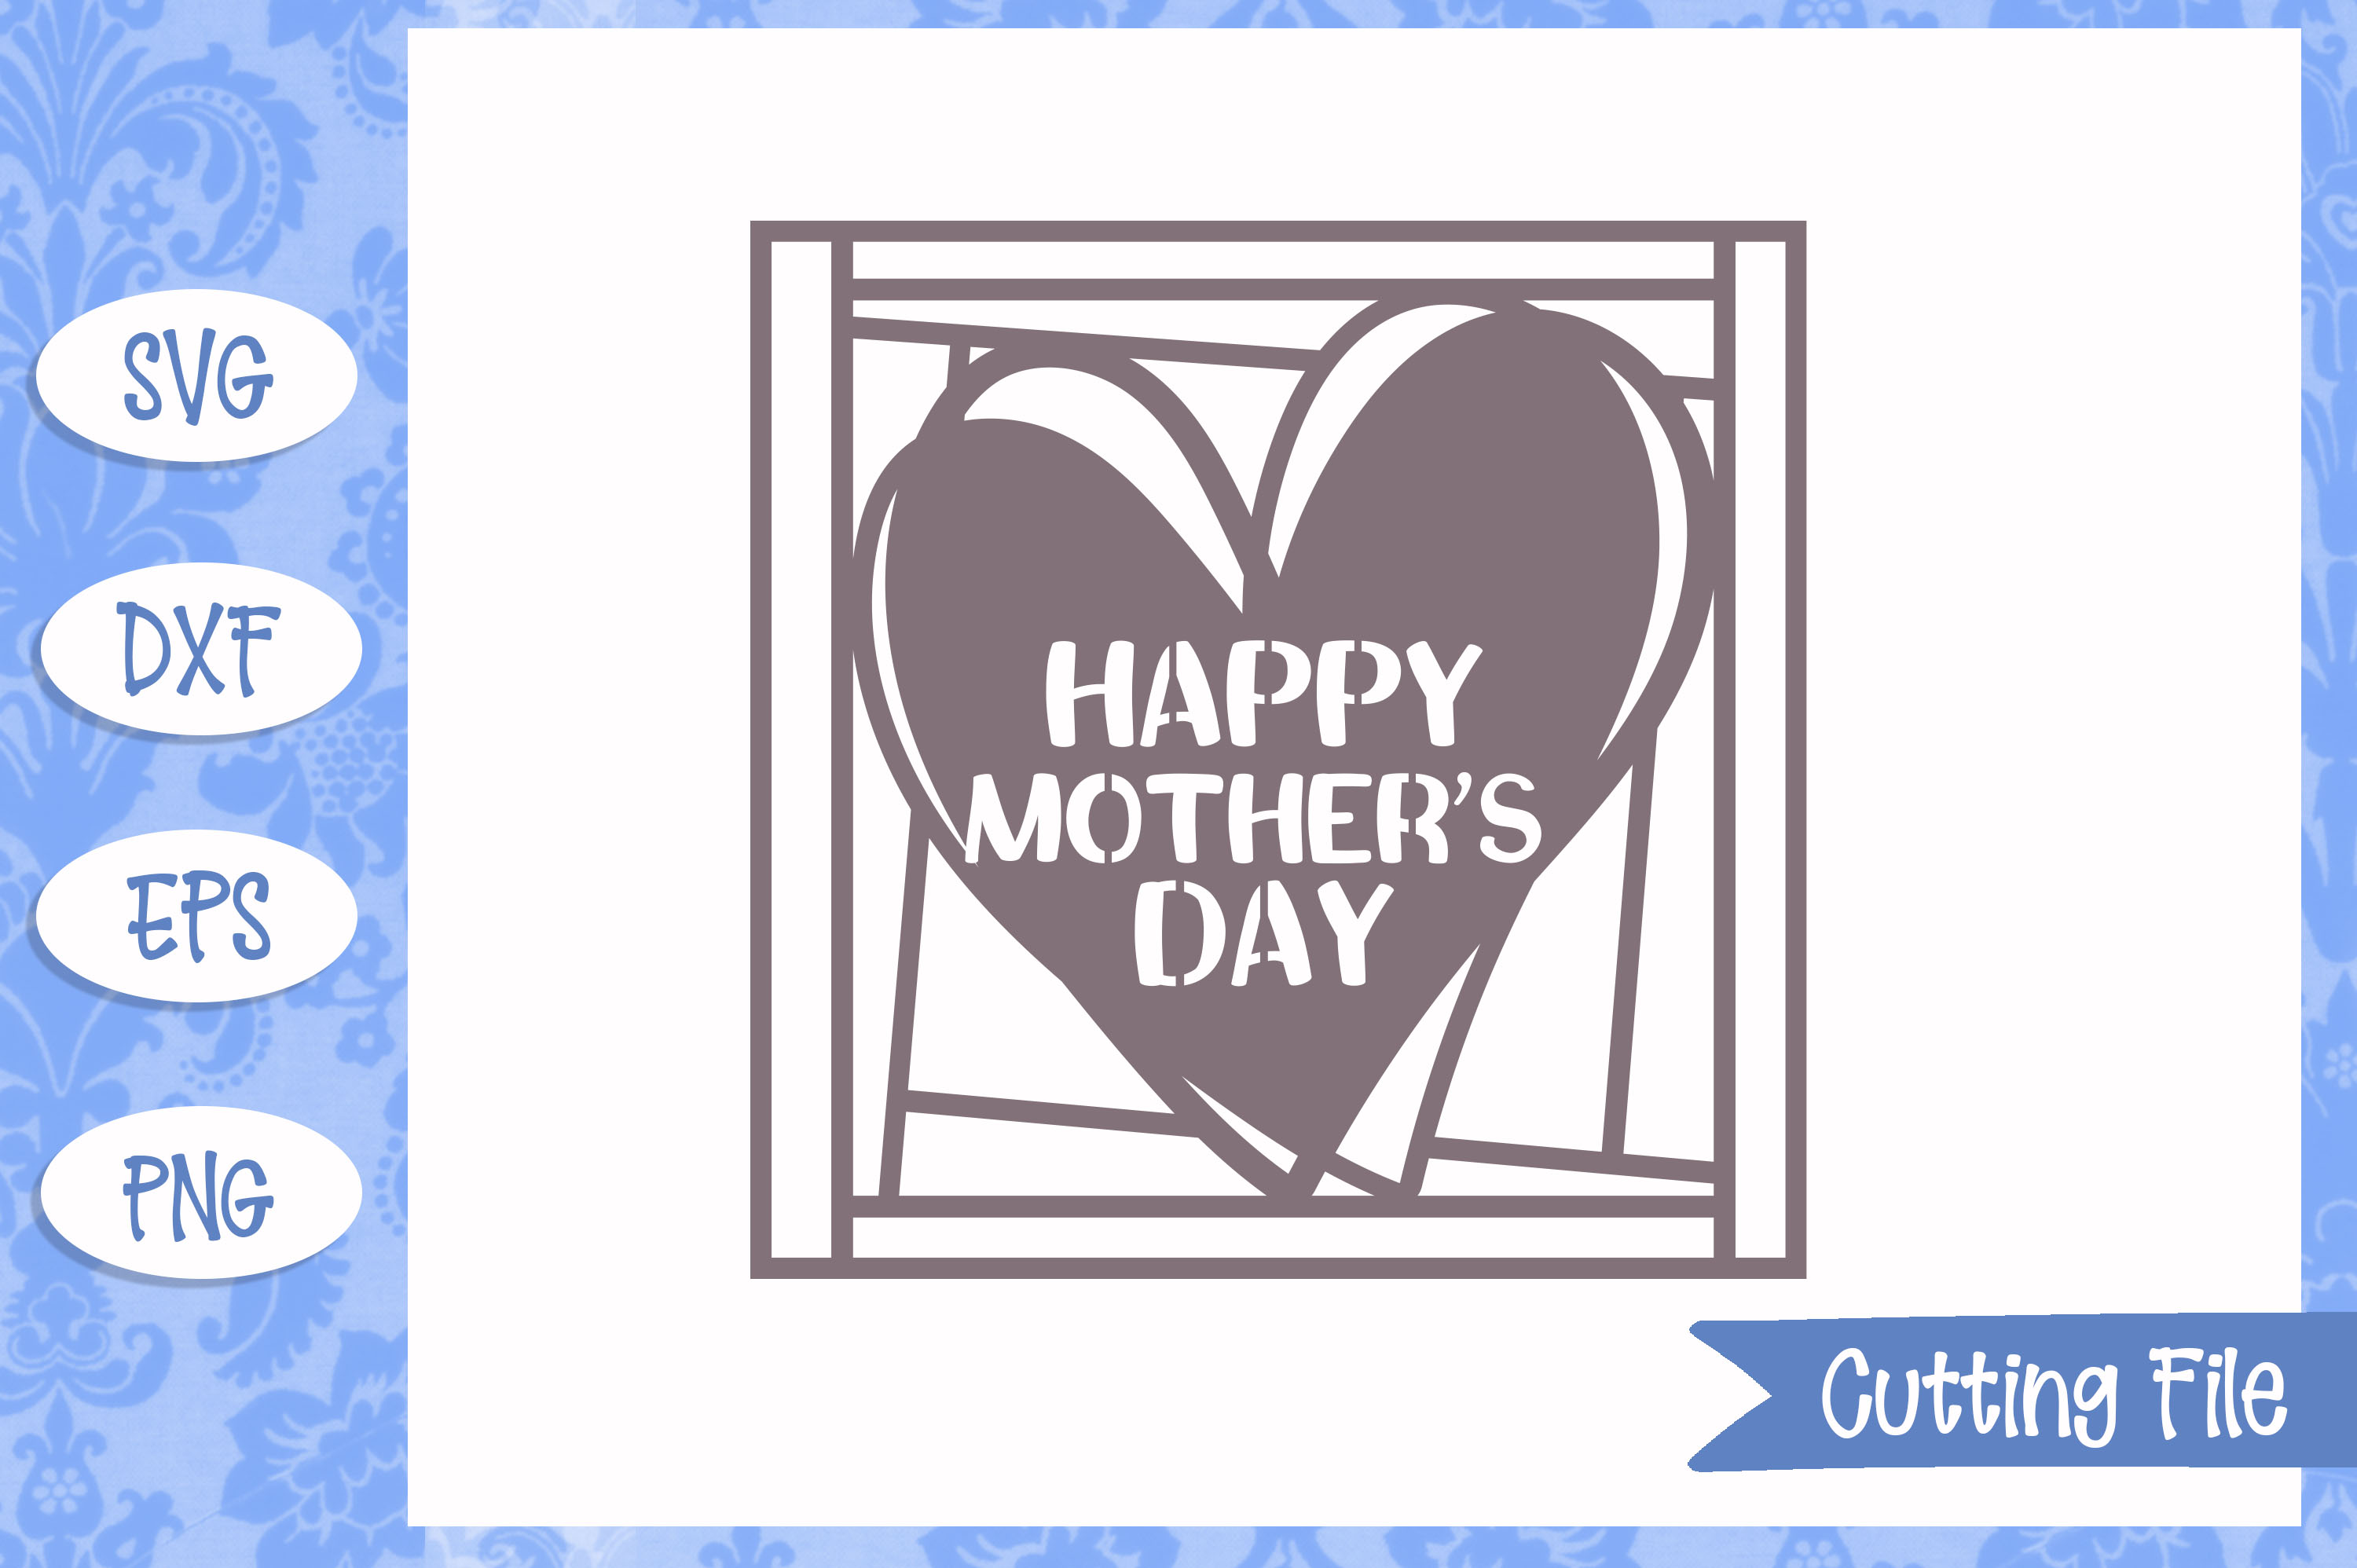 Happy Mother's Day SVG File example image 1